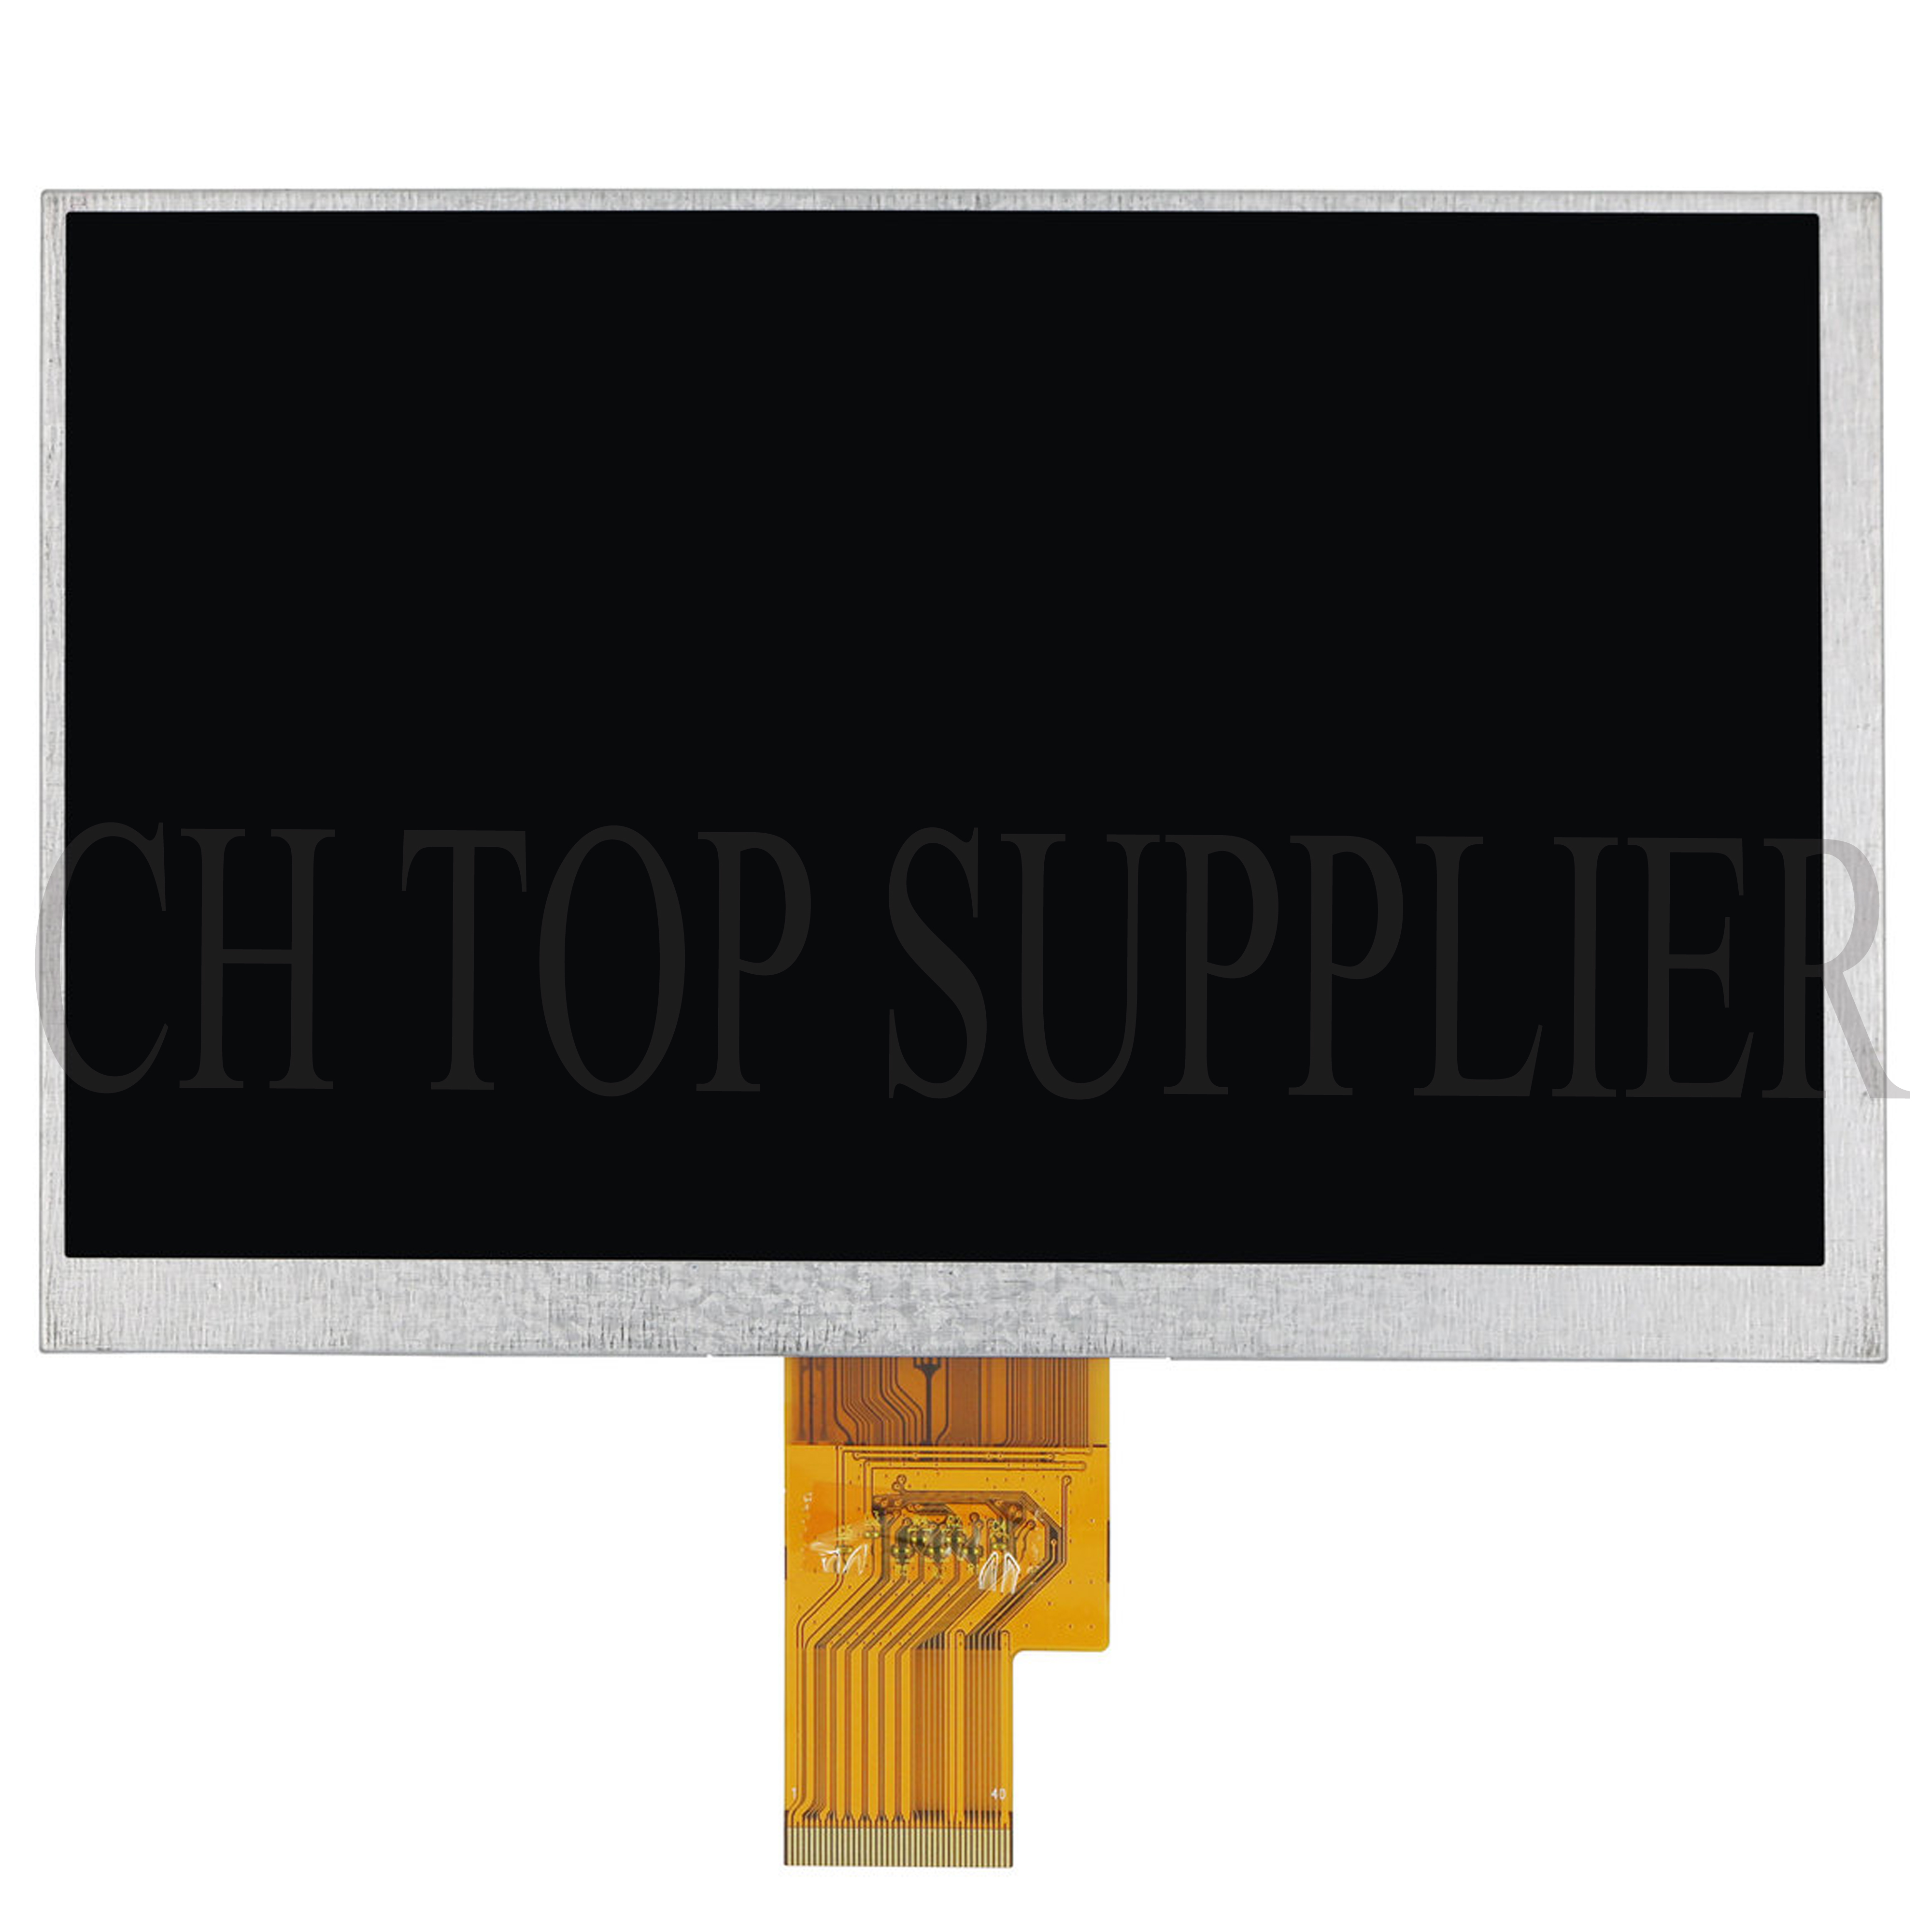 7 INCH LCD Display Screen For AINOL NOVO7 Crystal Tablet PC EJ070NA AT070TNA2 V.1 1024*600 at102tn03 v 8 at102tn03 v 9 byd na zhi jie 10 2 inch lcd screen display